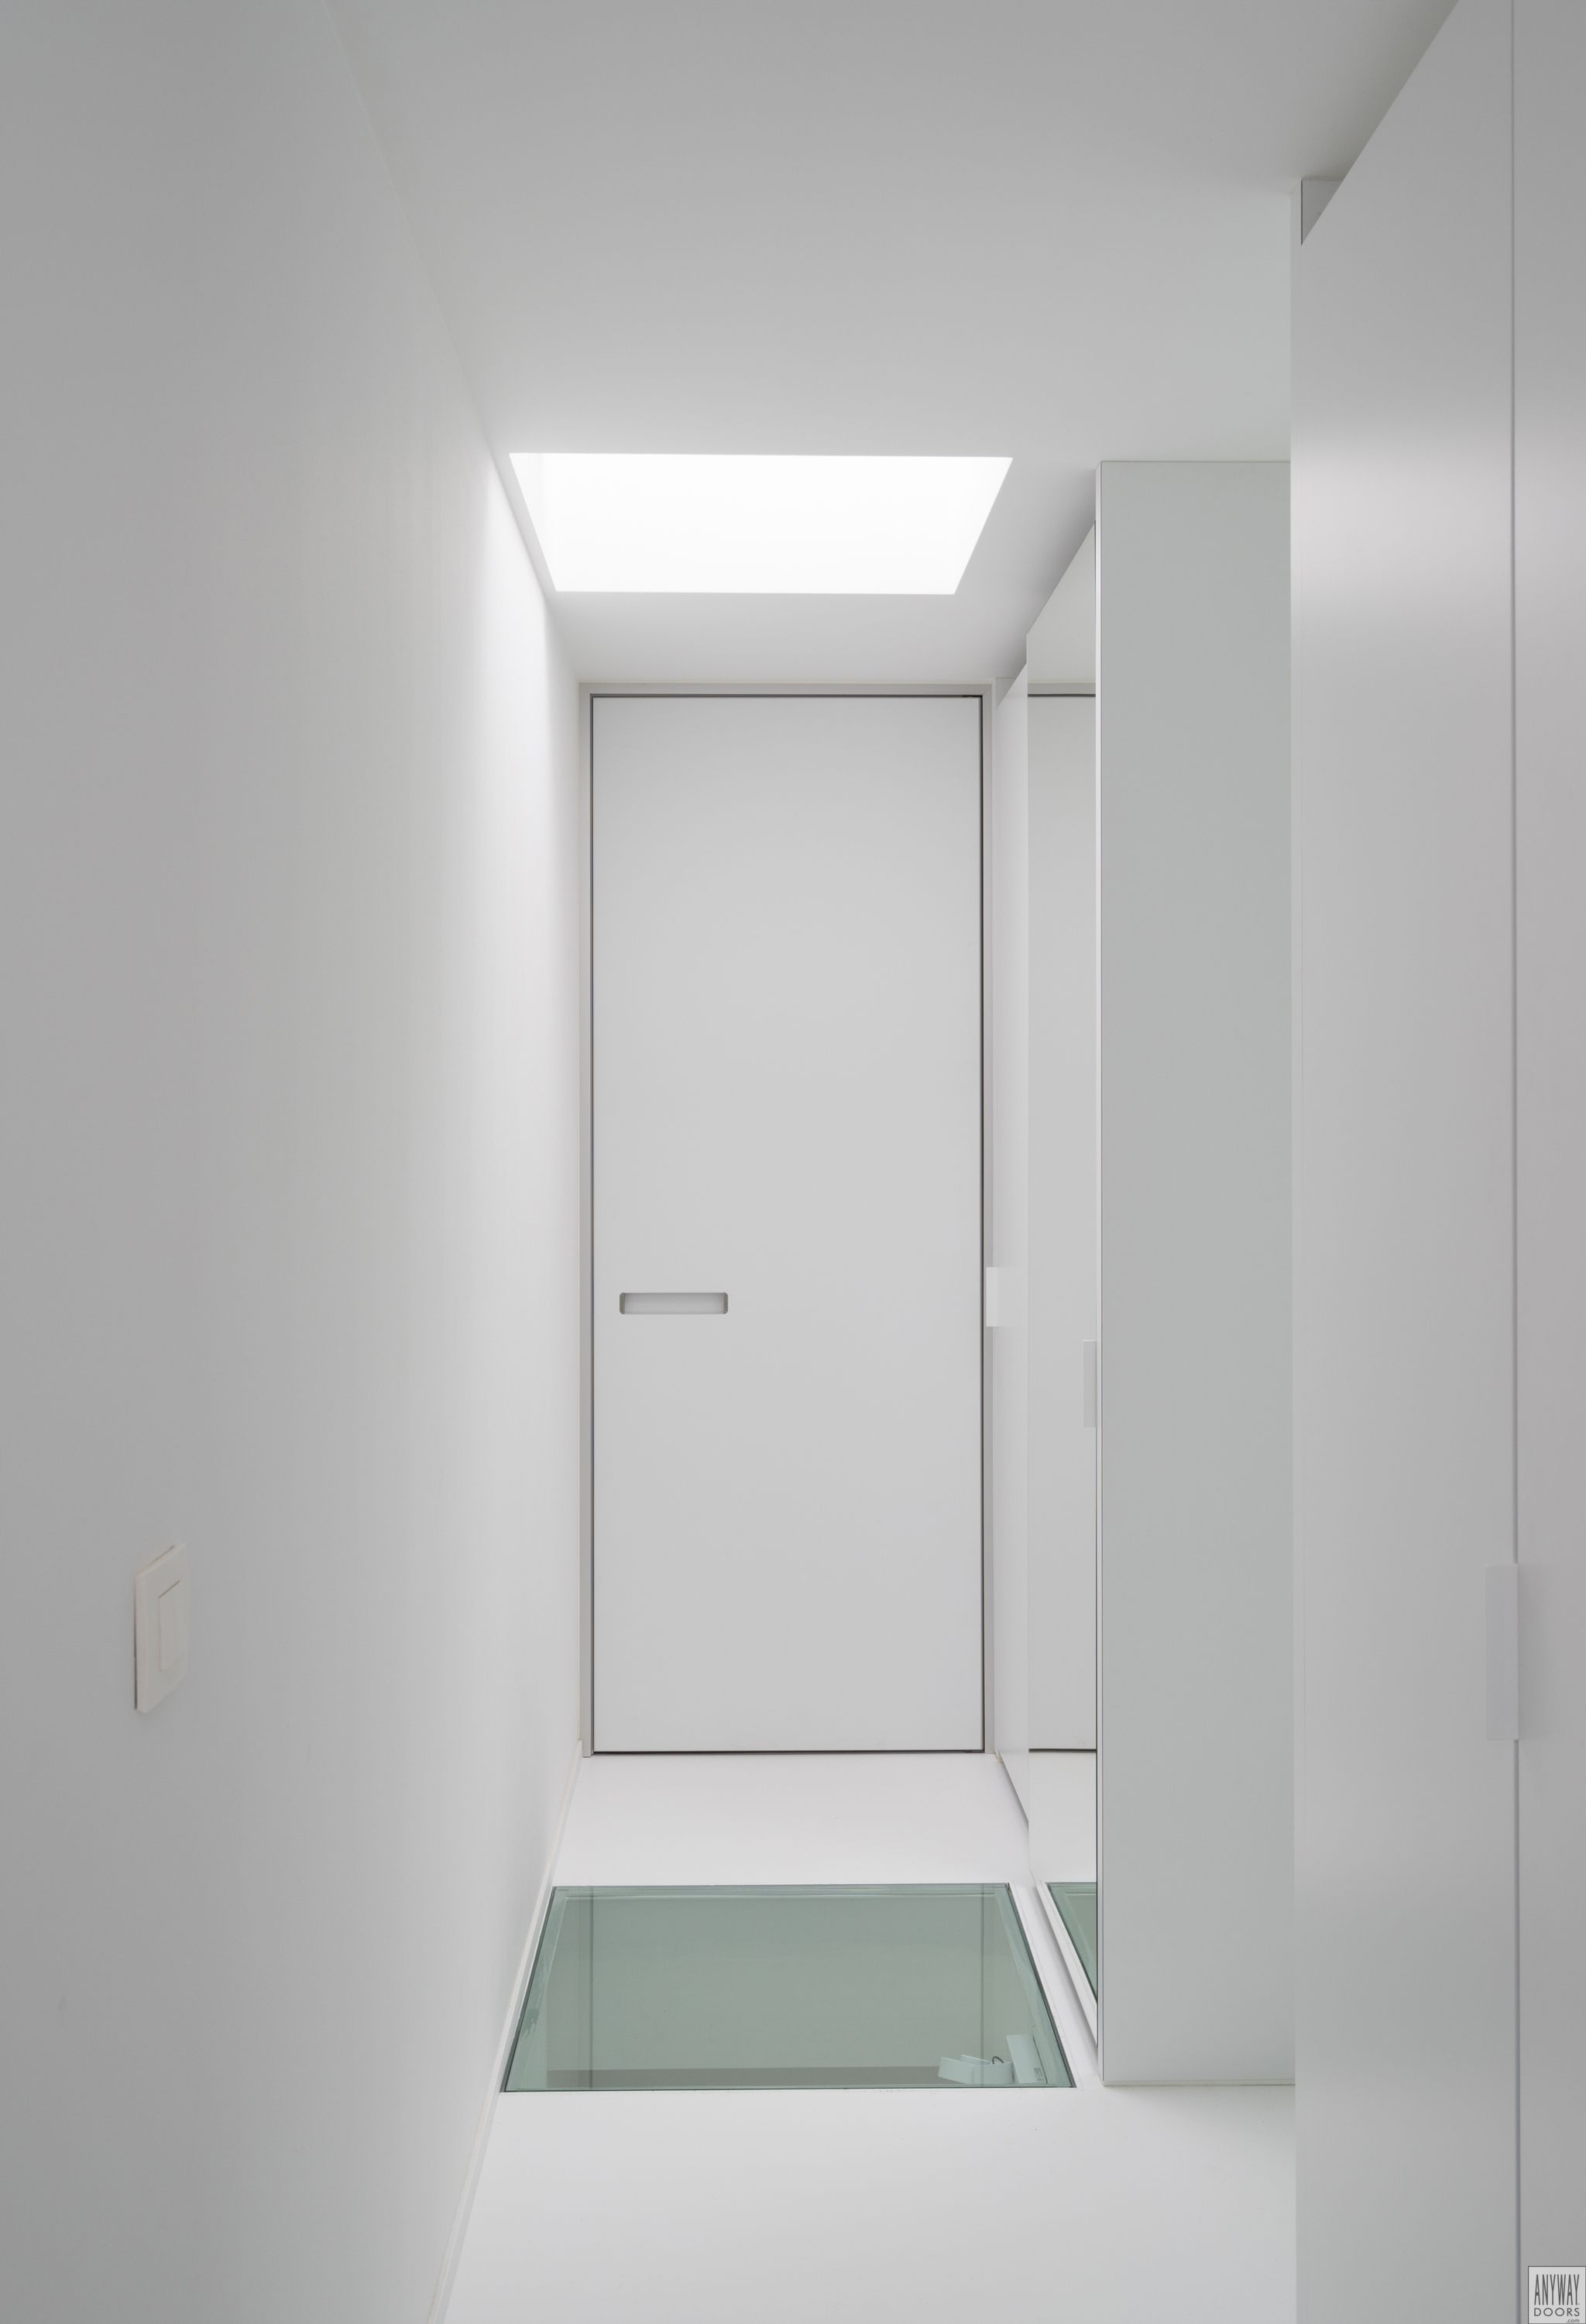 White design interior door with anodized aluminium for the white design interior door with anodized aluminium for the minimalist door frame the built planetlyrics Image collections